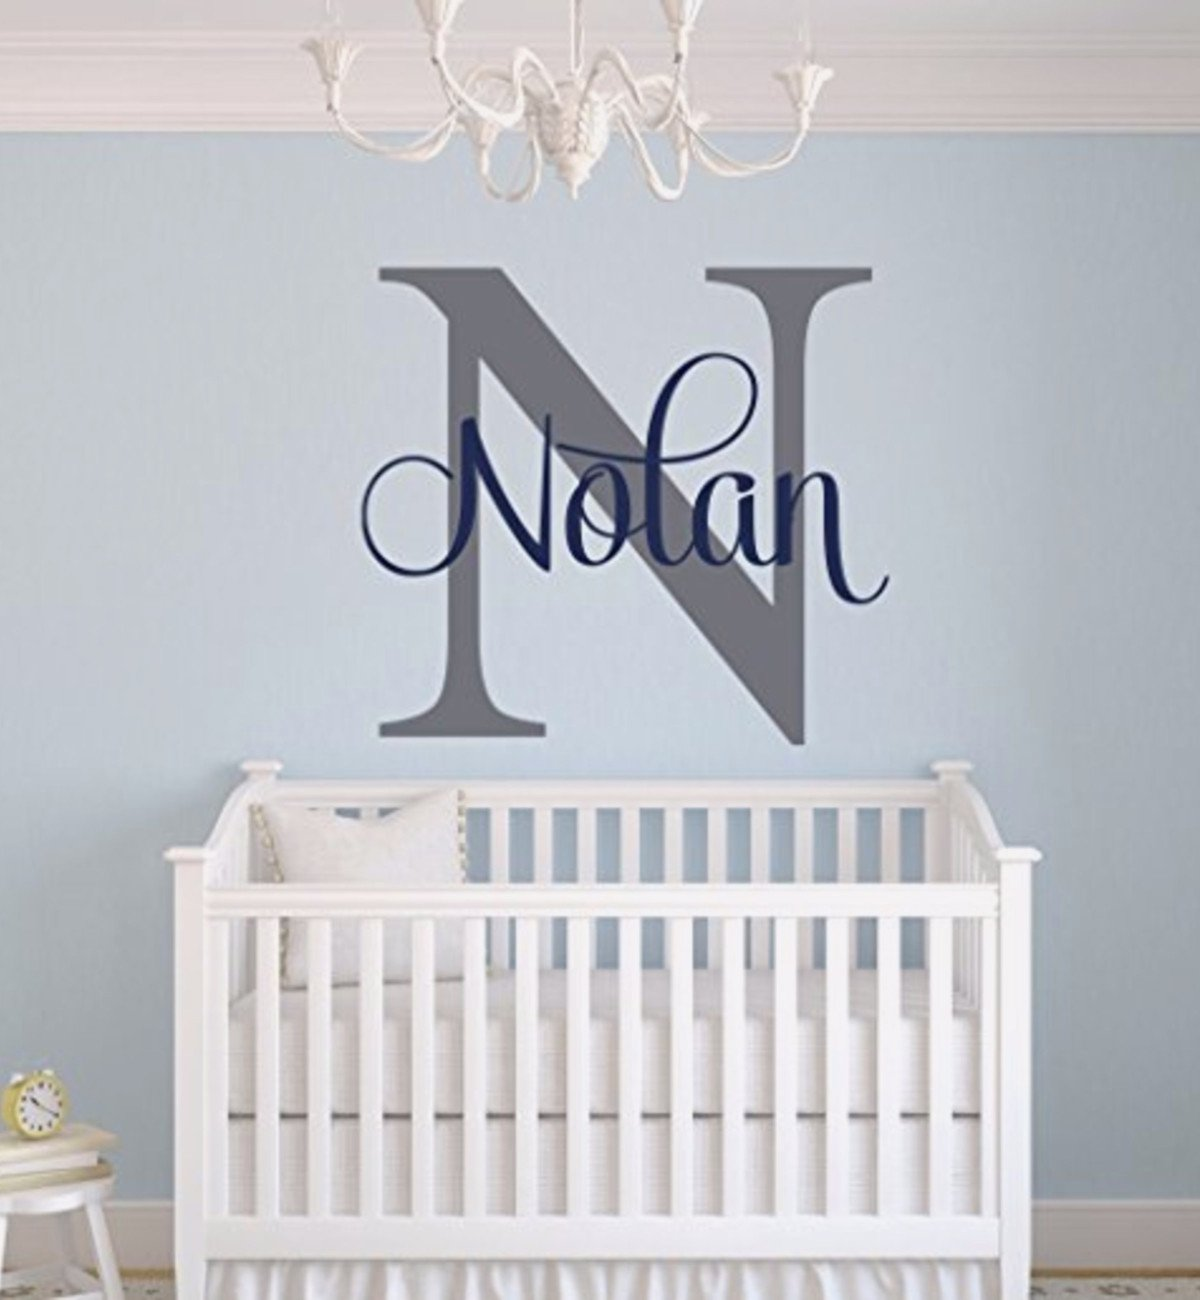 Wall Decor for Baby Room Fresh Unique Baby Boy Nursery themes and Decor Ideas Involvery Munity Blog